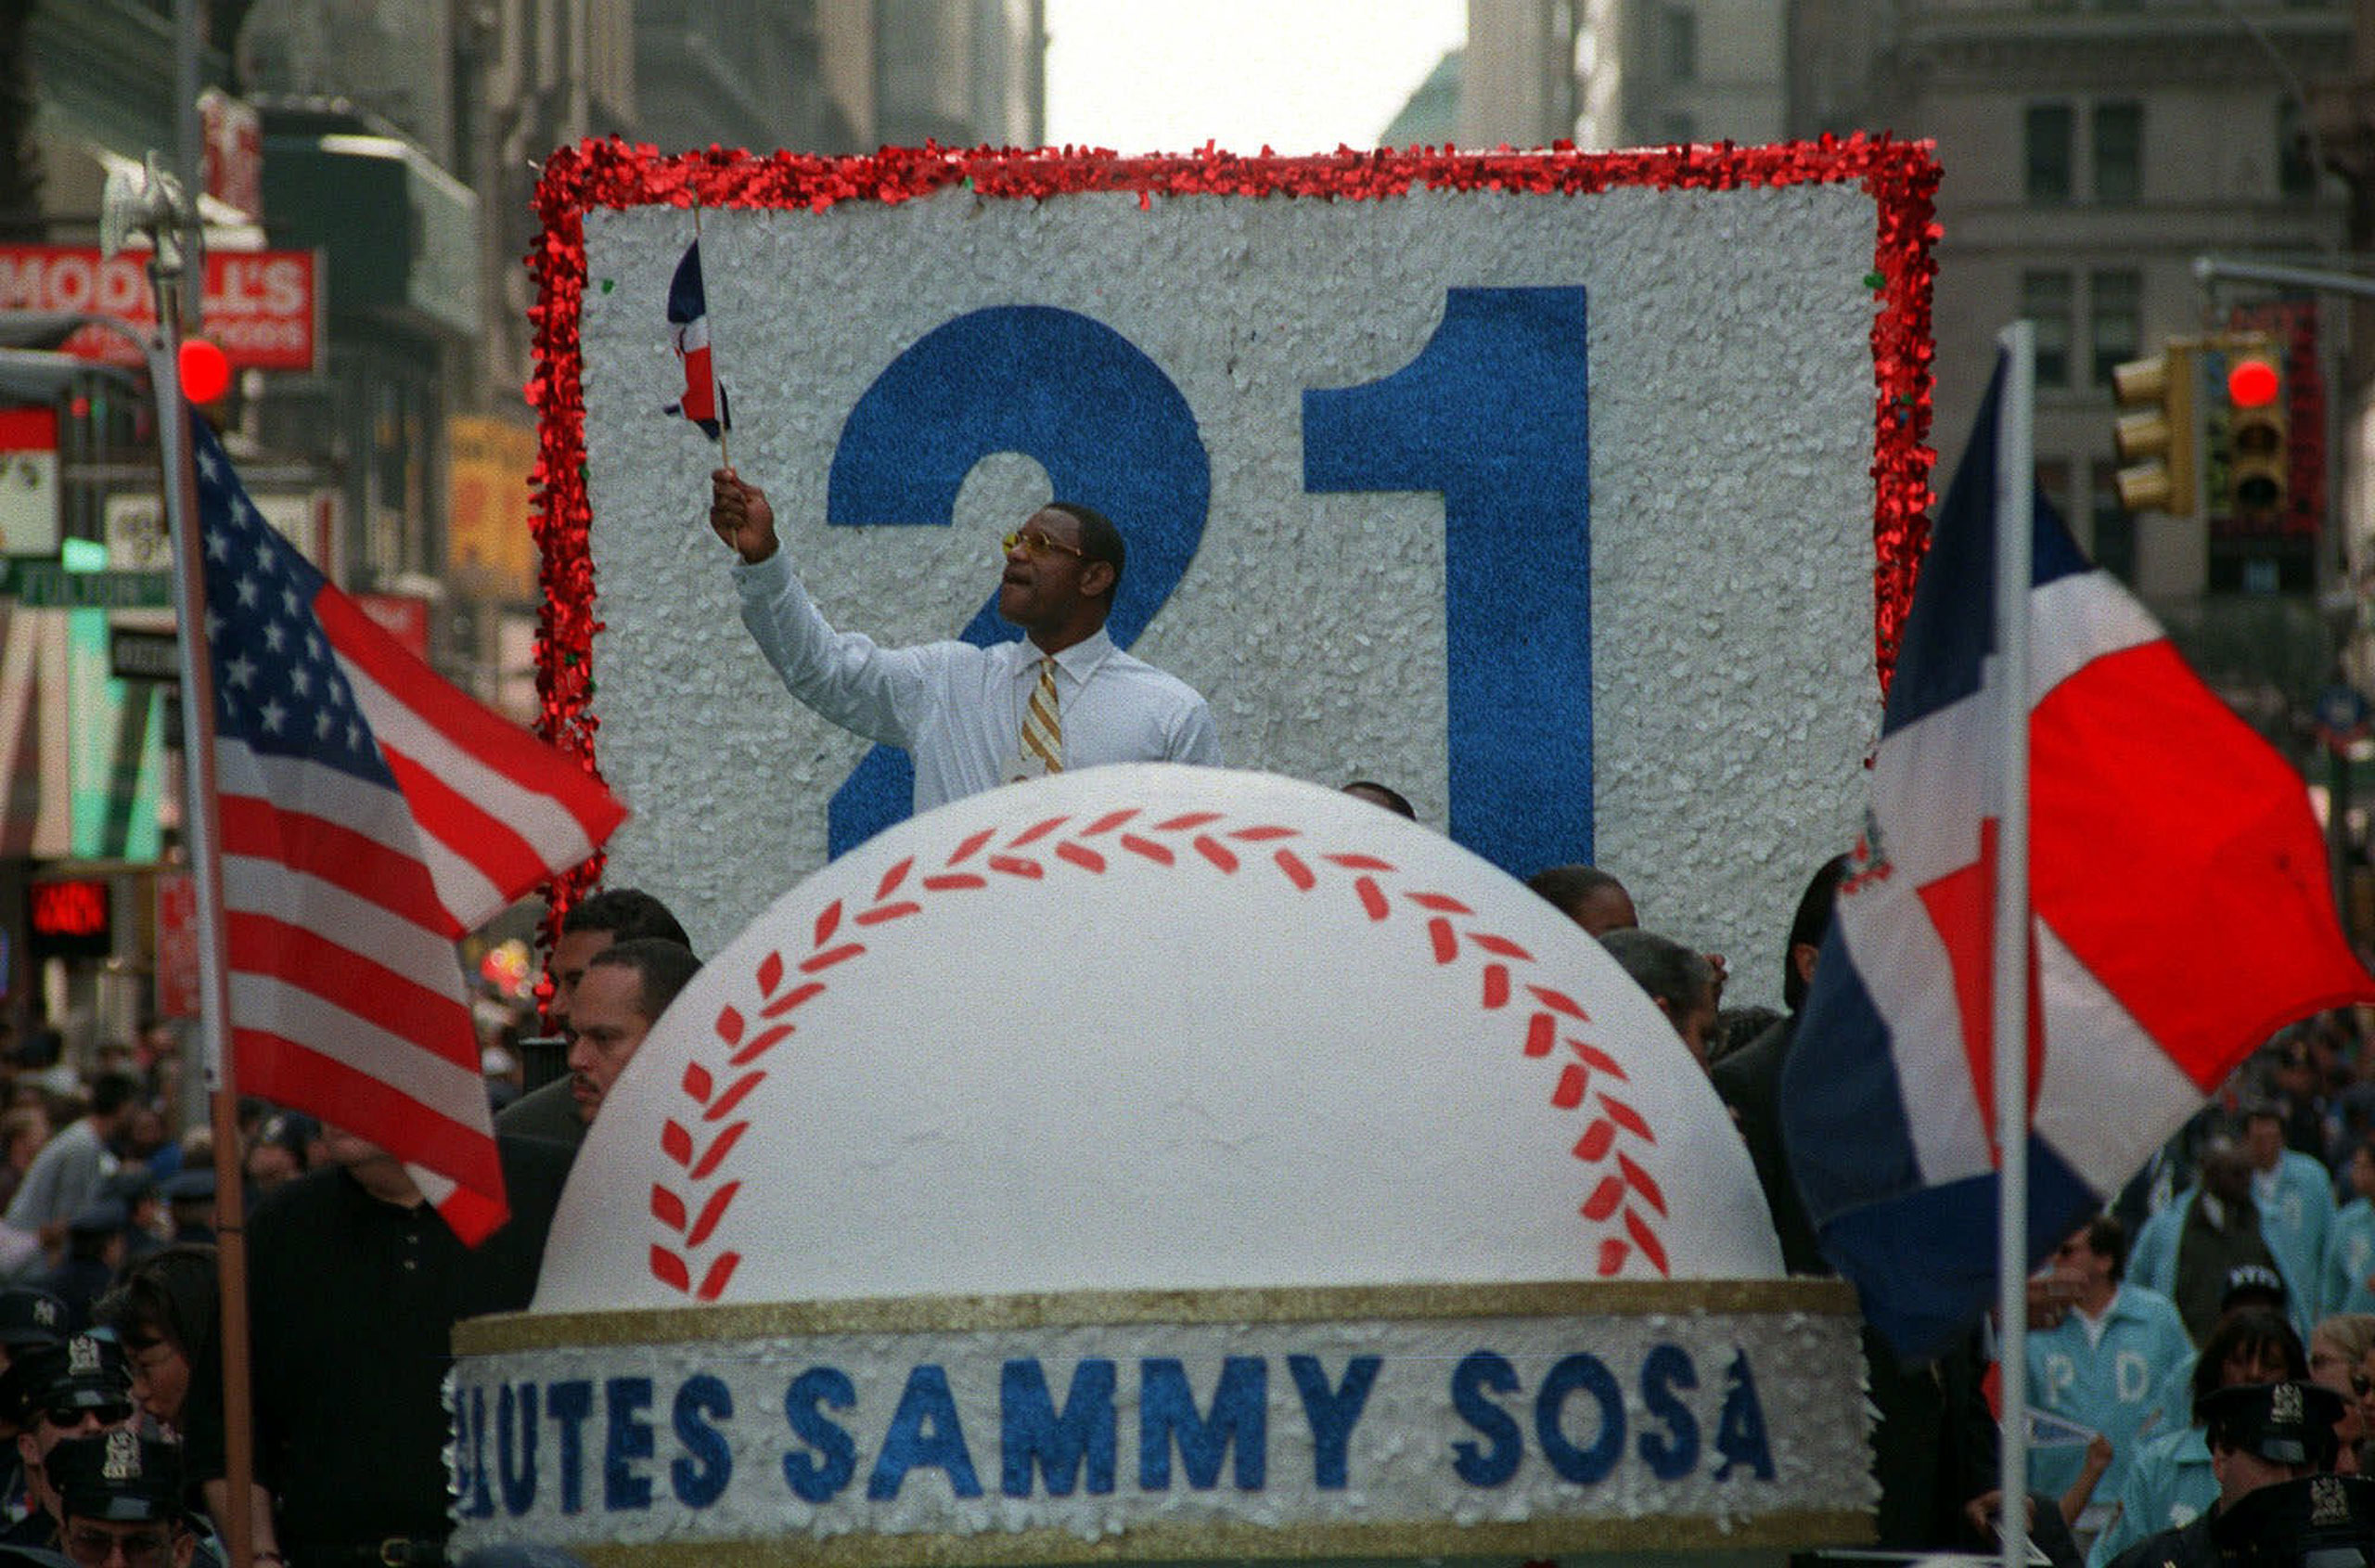 The Chicago Cubs' Sammy Sosa, between flags from the United States and the Dominican Republic, during a parade in his honor on Oct. 17, 1998, after he tied the single-season home-run record.